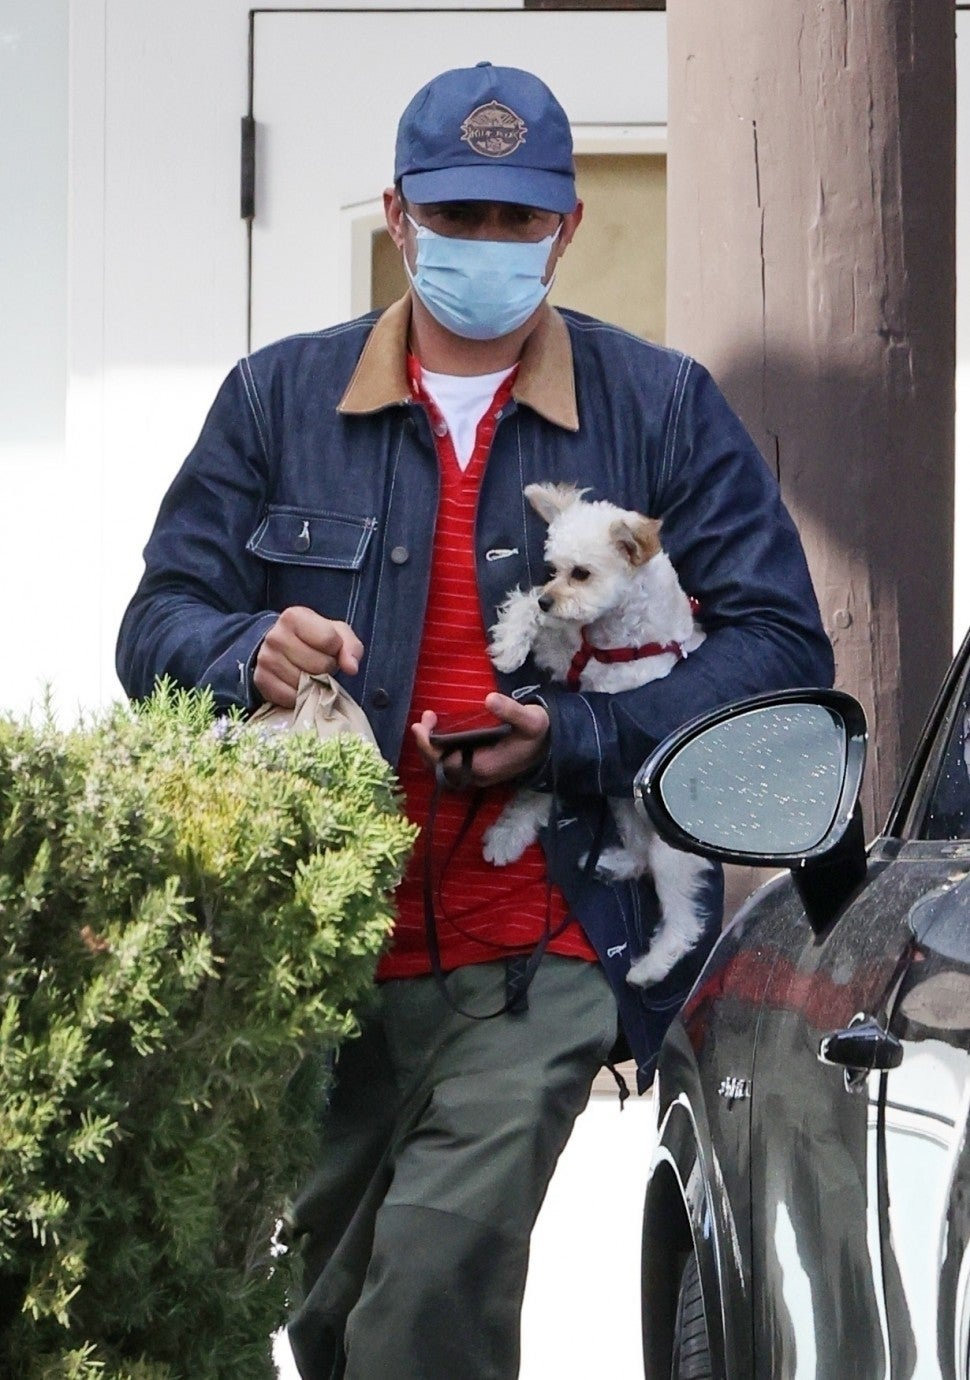 Orlando Bloom Steps Out With A New Puppy Months After Tragic Death Of Dog Mighty Entertainment Tonight